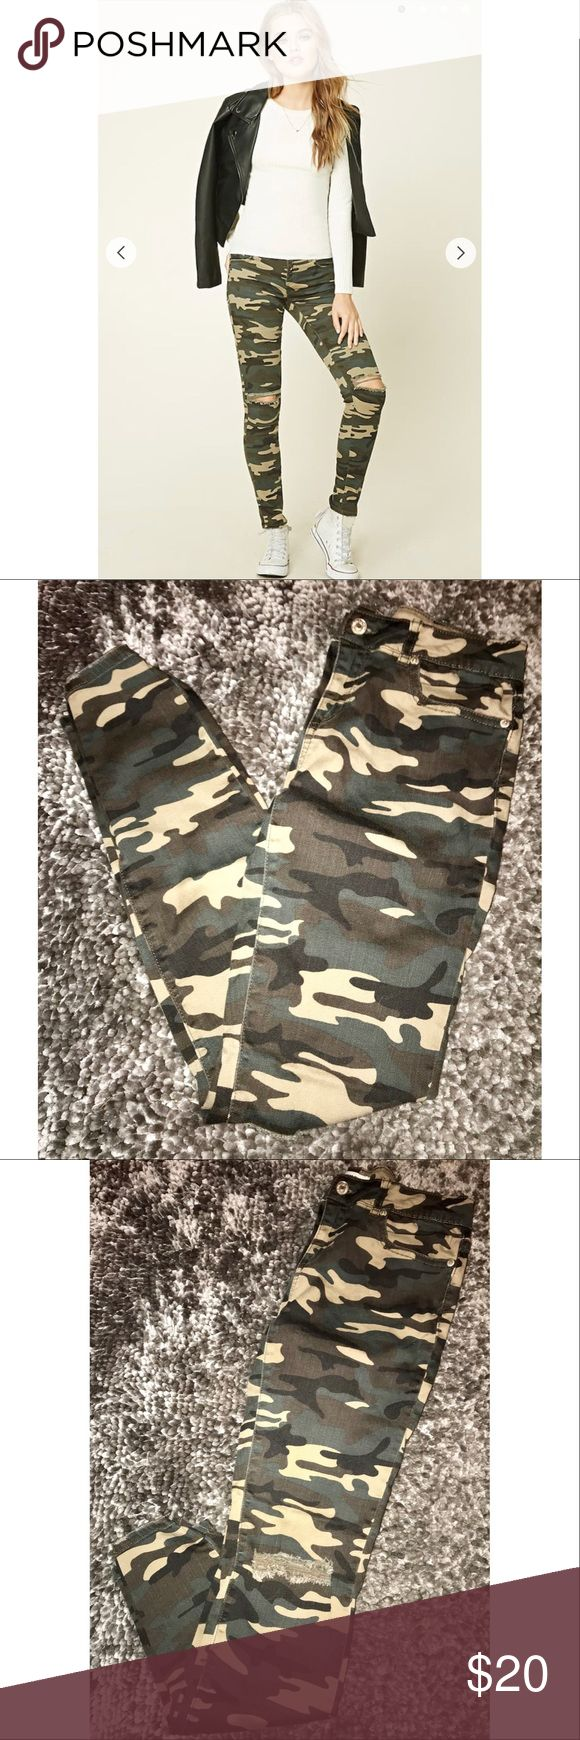 F21 Camo Skinny Jeans Forever 21 Camo Skinny Jeans with rips at the knees. Size: US 28. Barely worn! Forever 21 Jeans Skinny